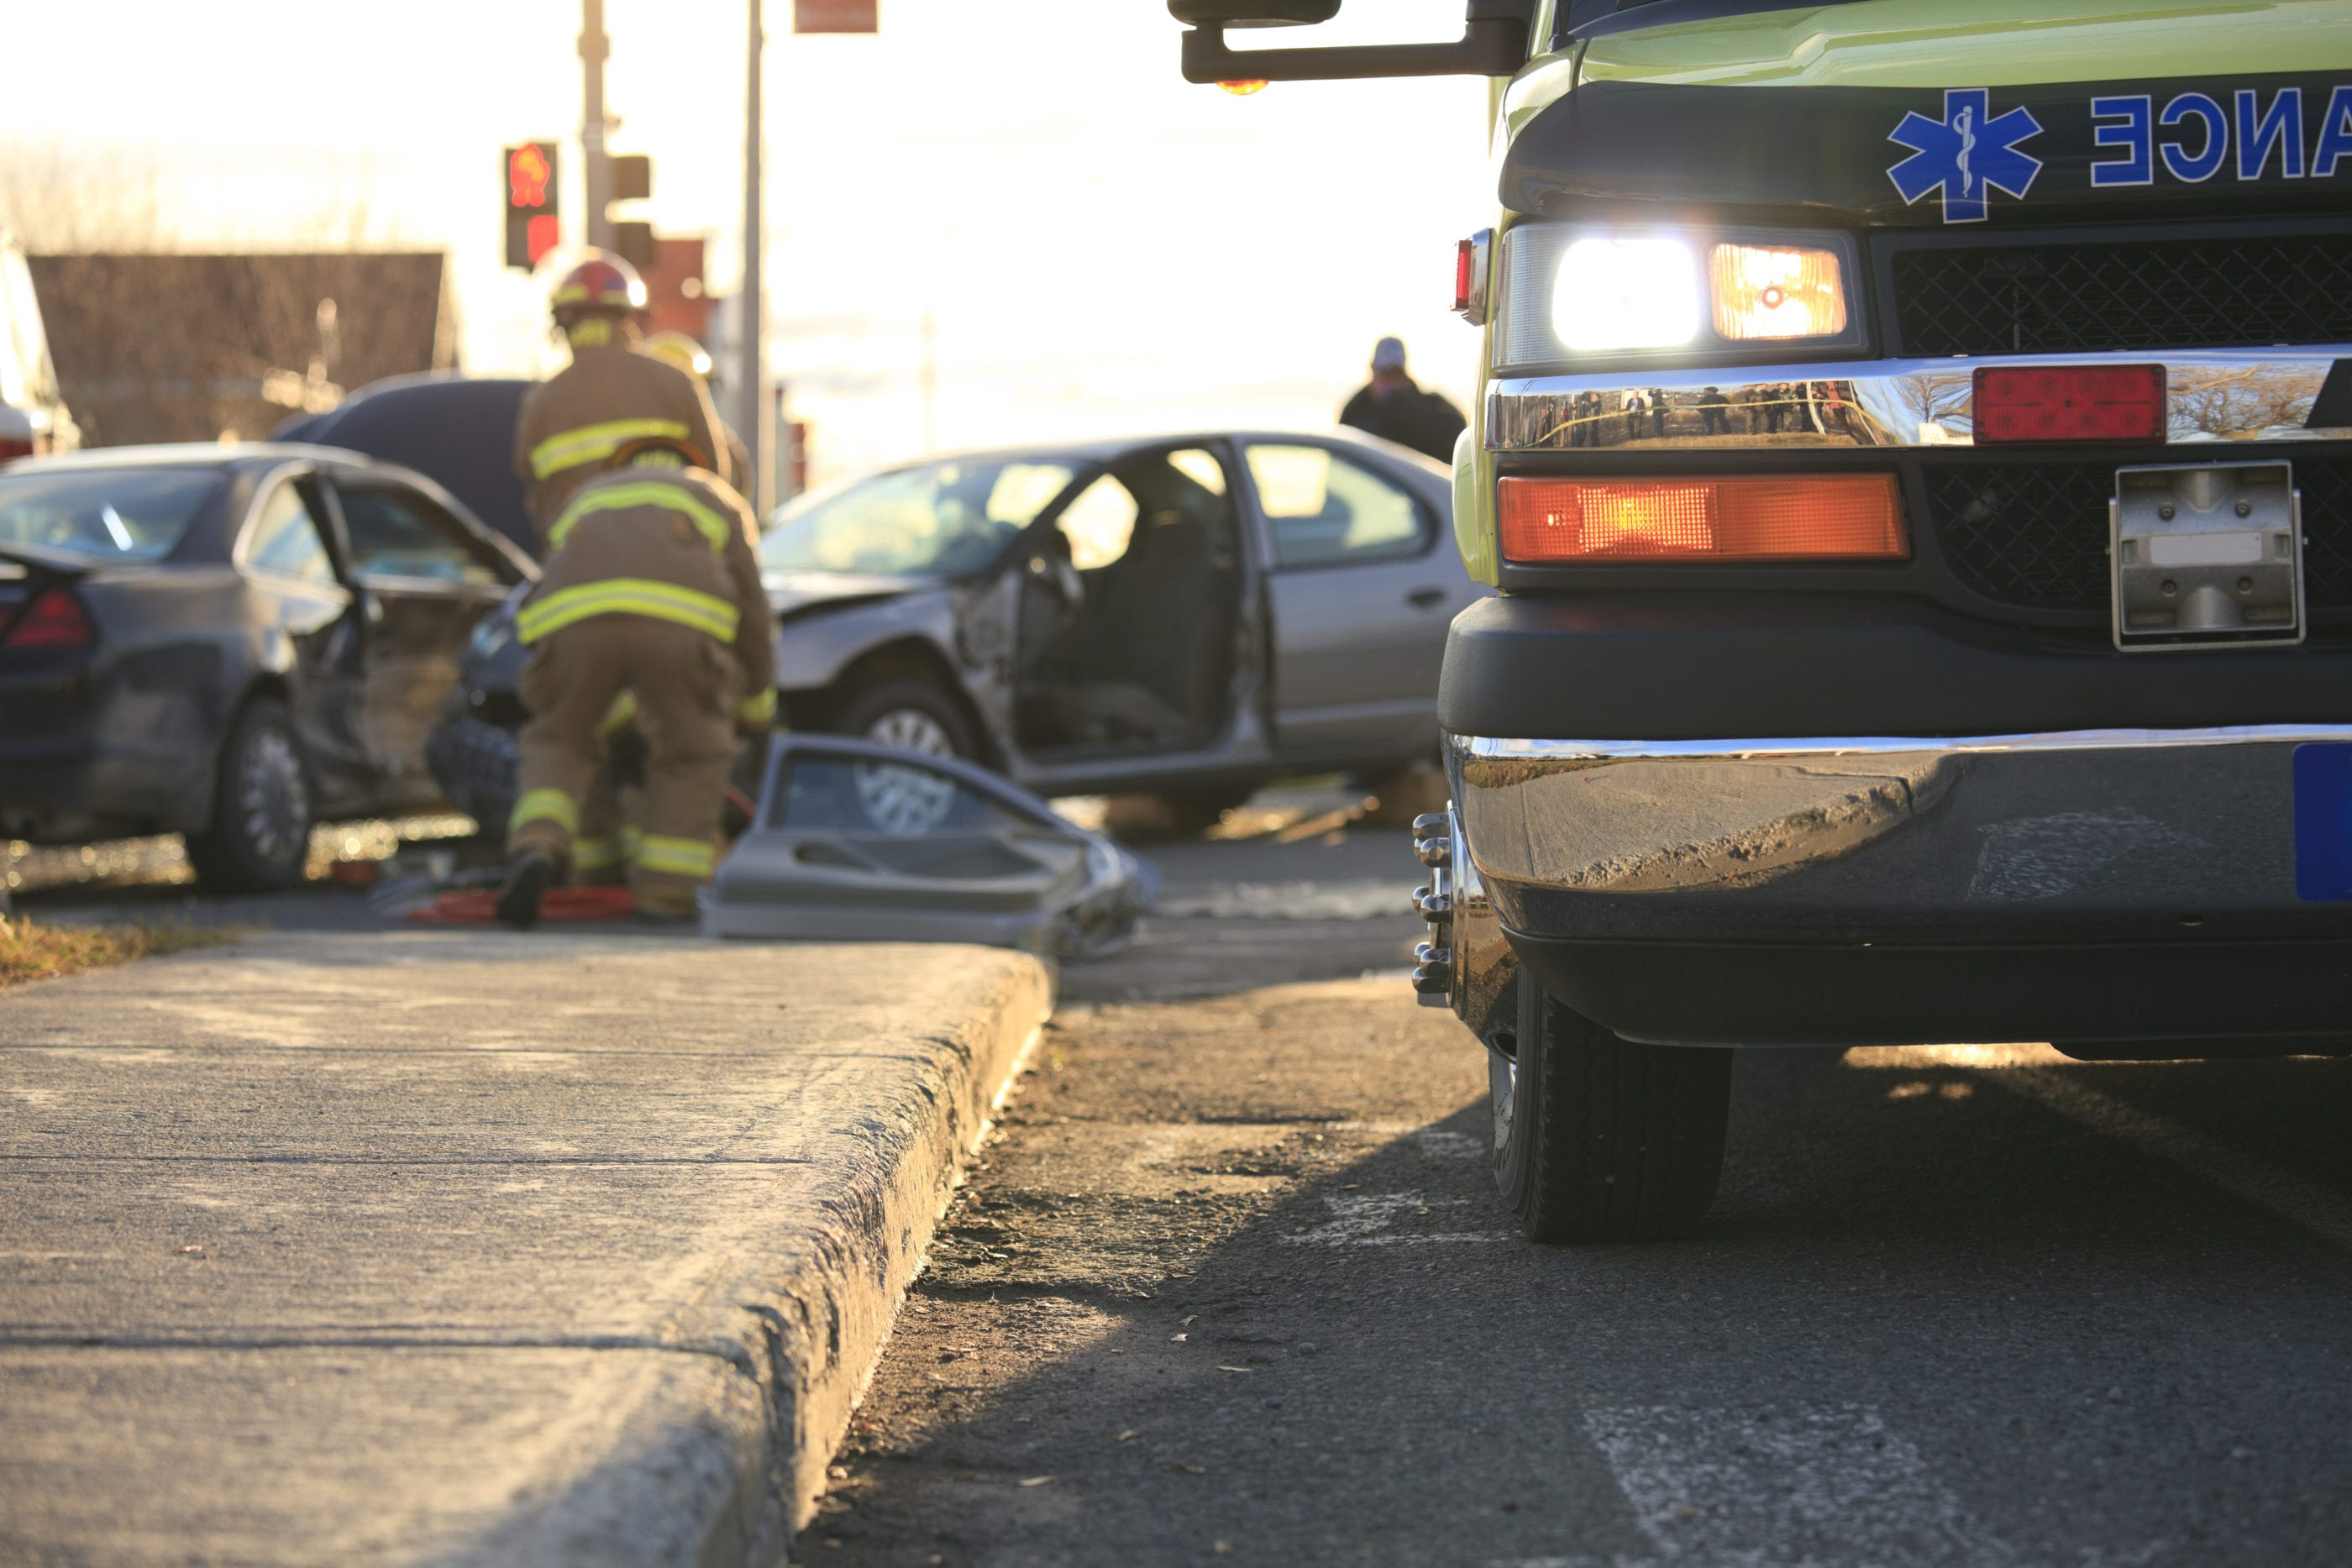 Car accident law firm Picture